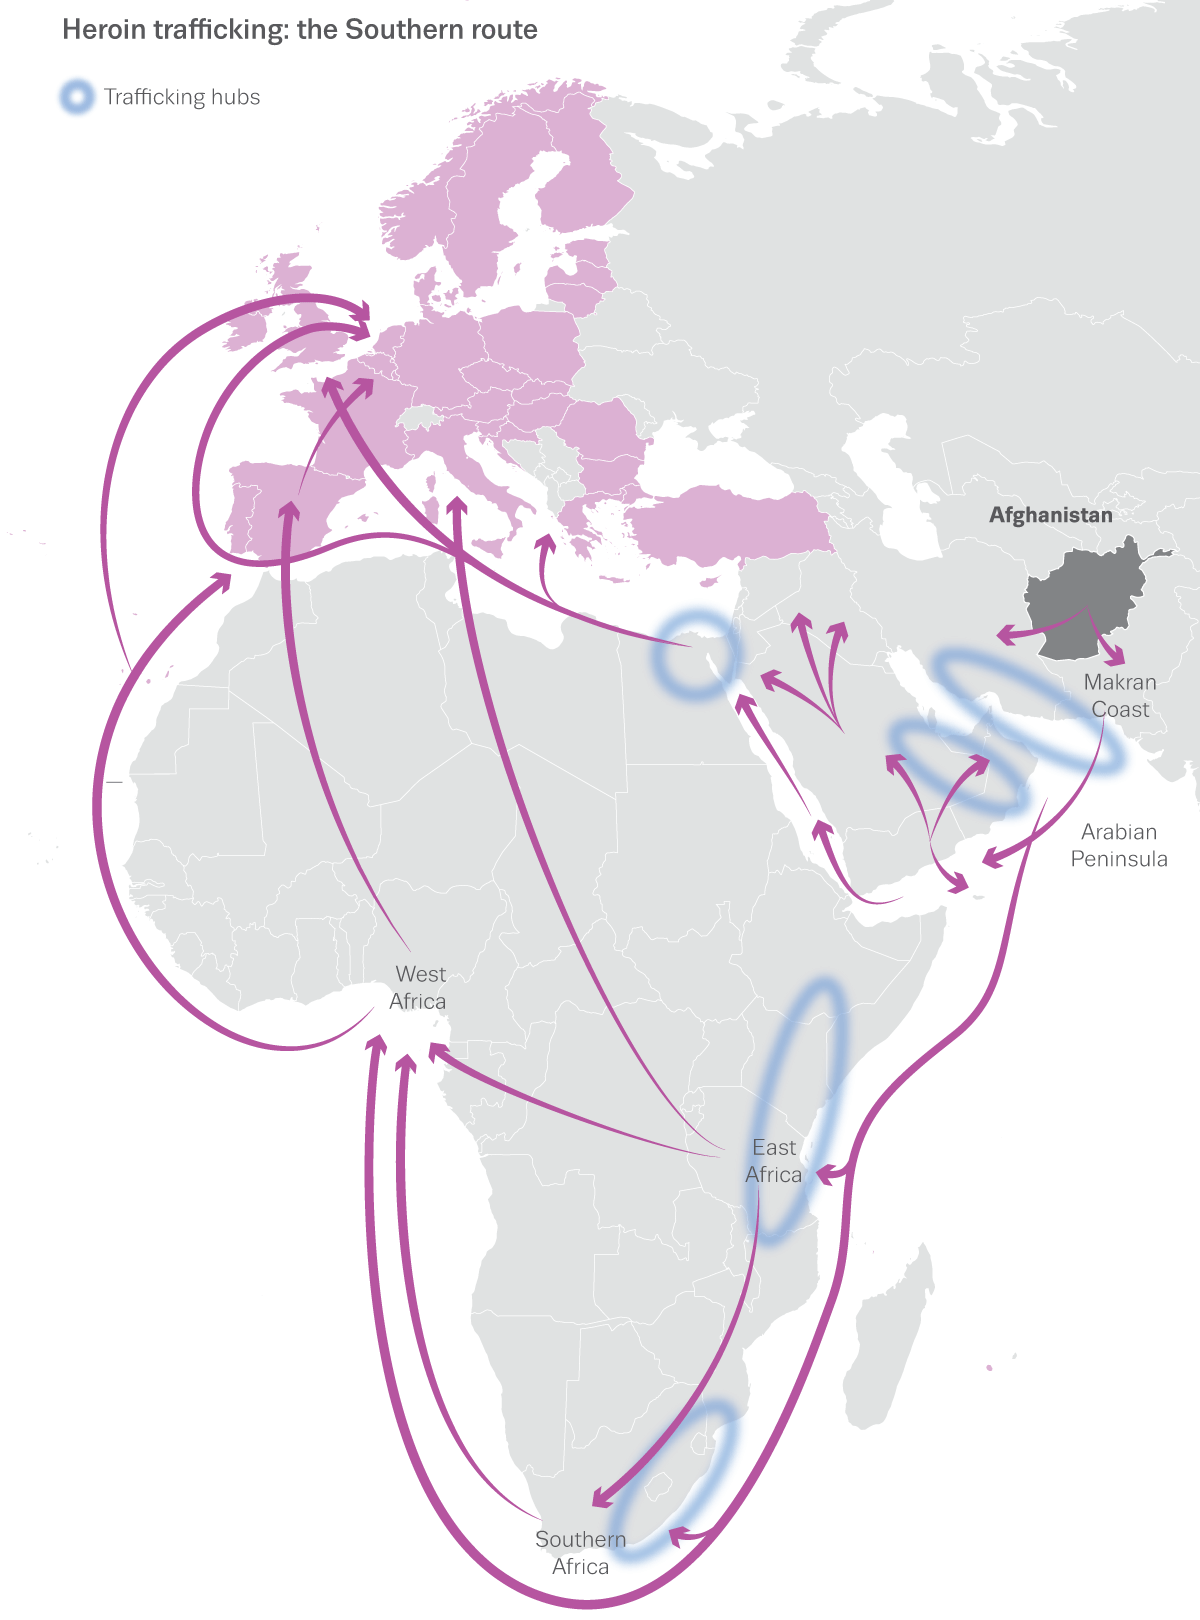 Map showing Southern route for trafficking heroin to Europe